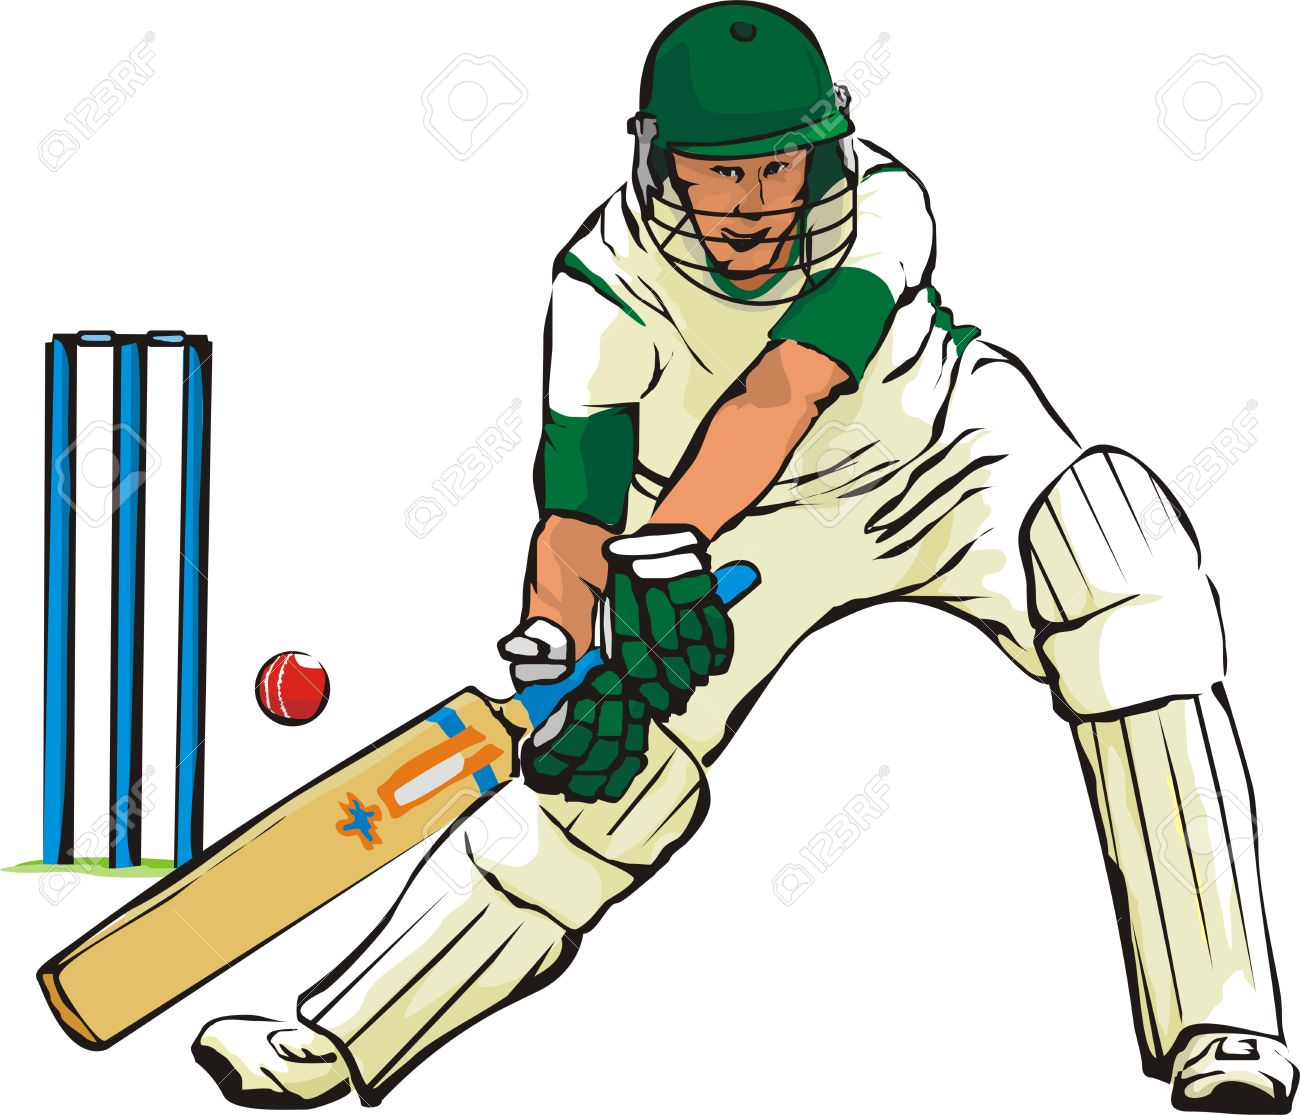 Sports Cricket Clipart.